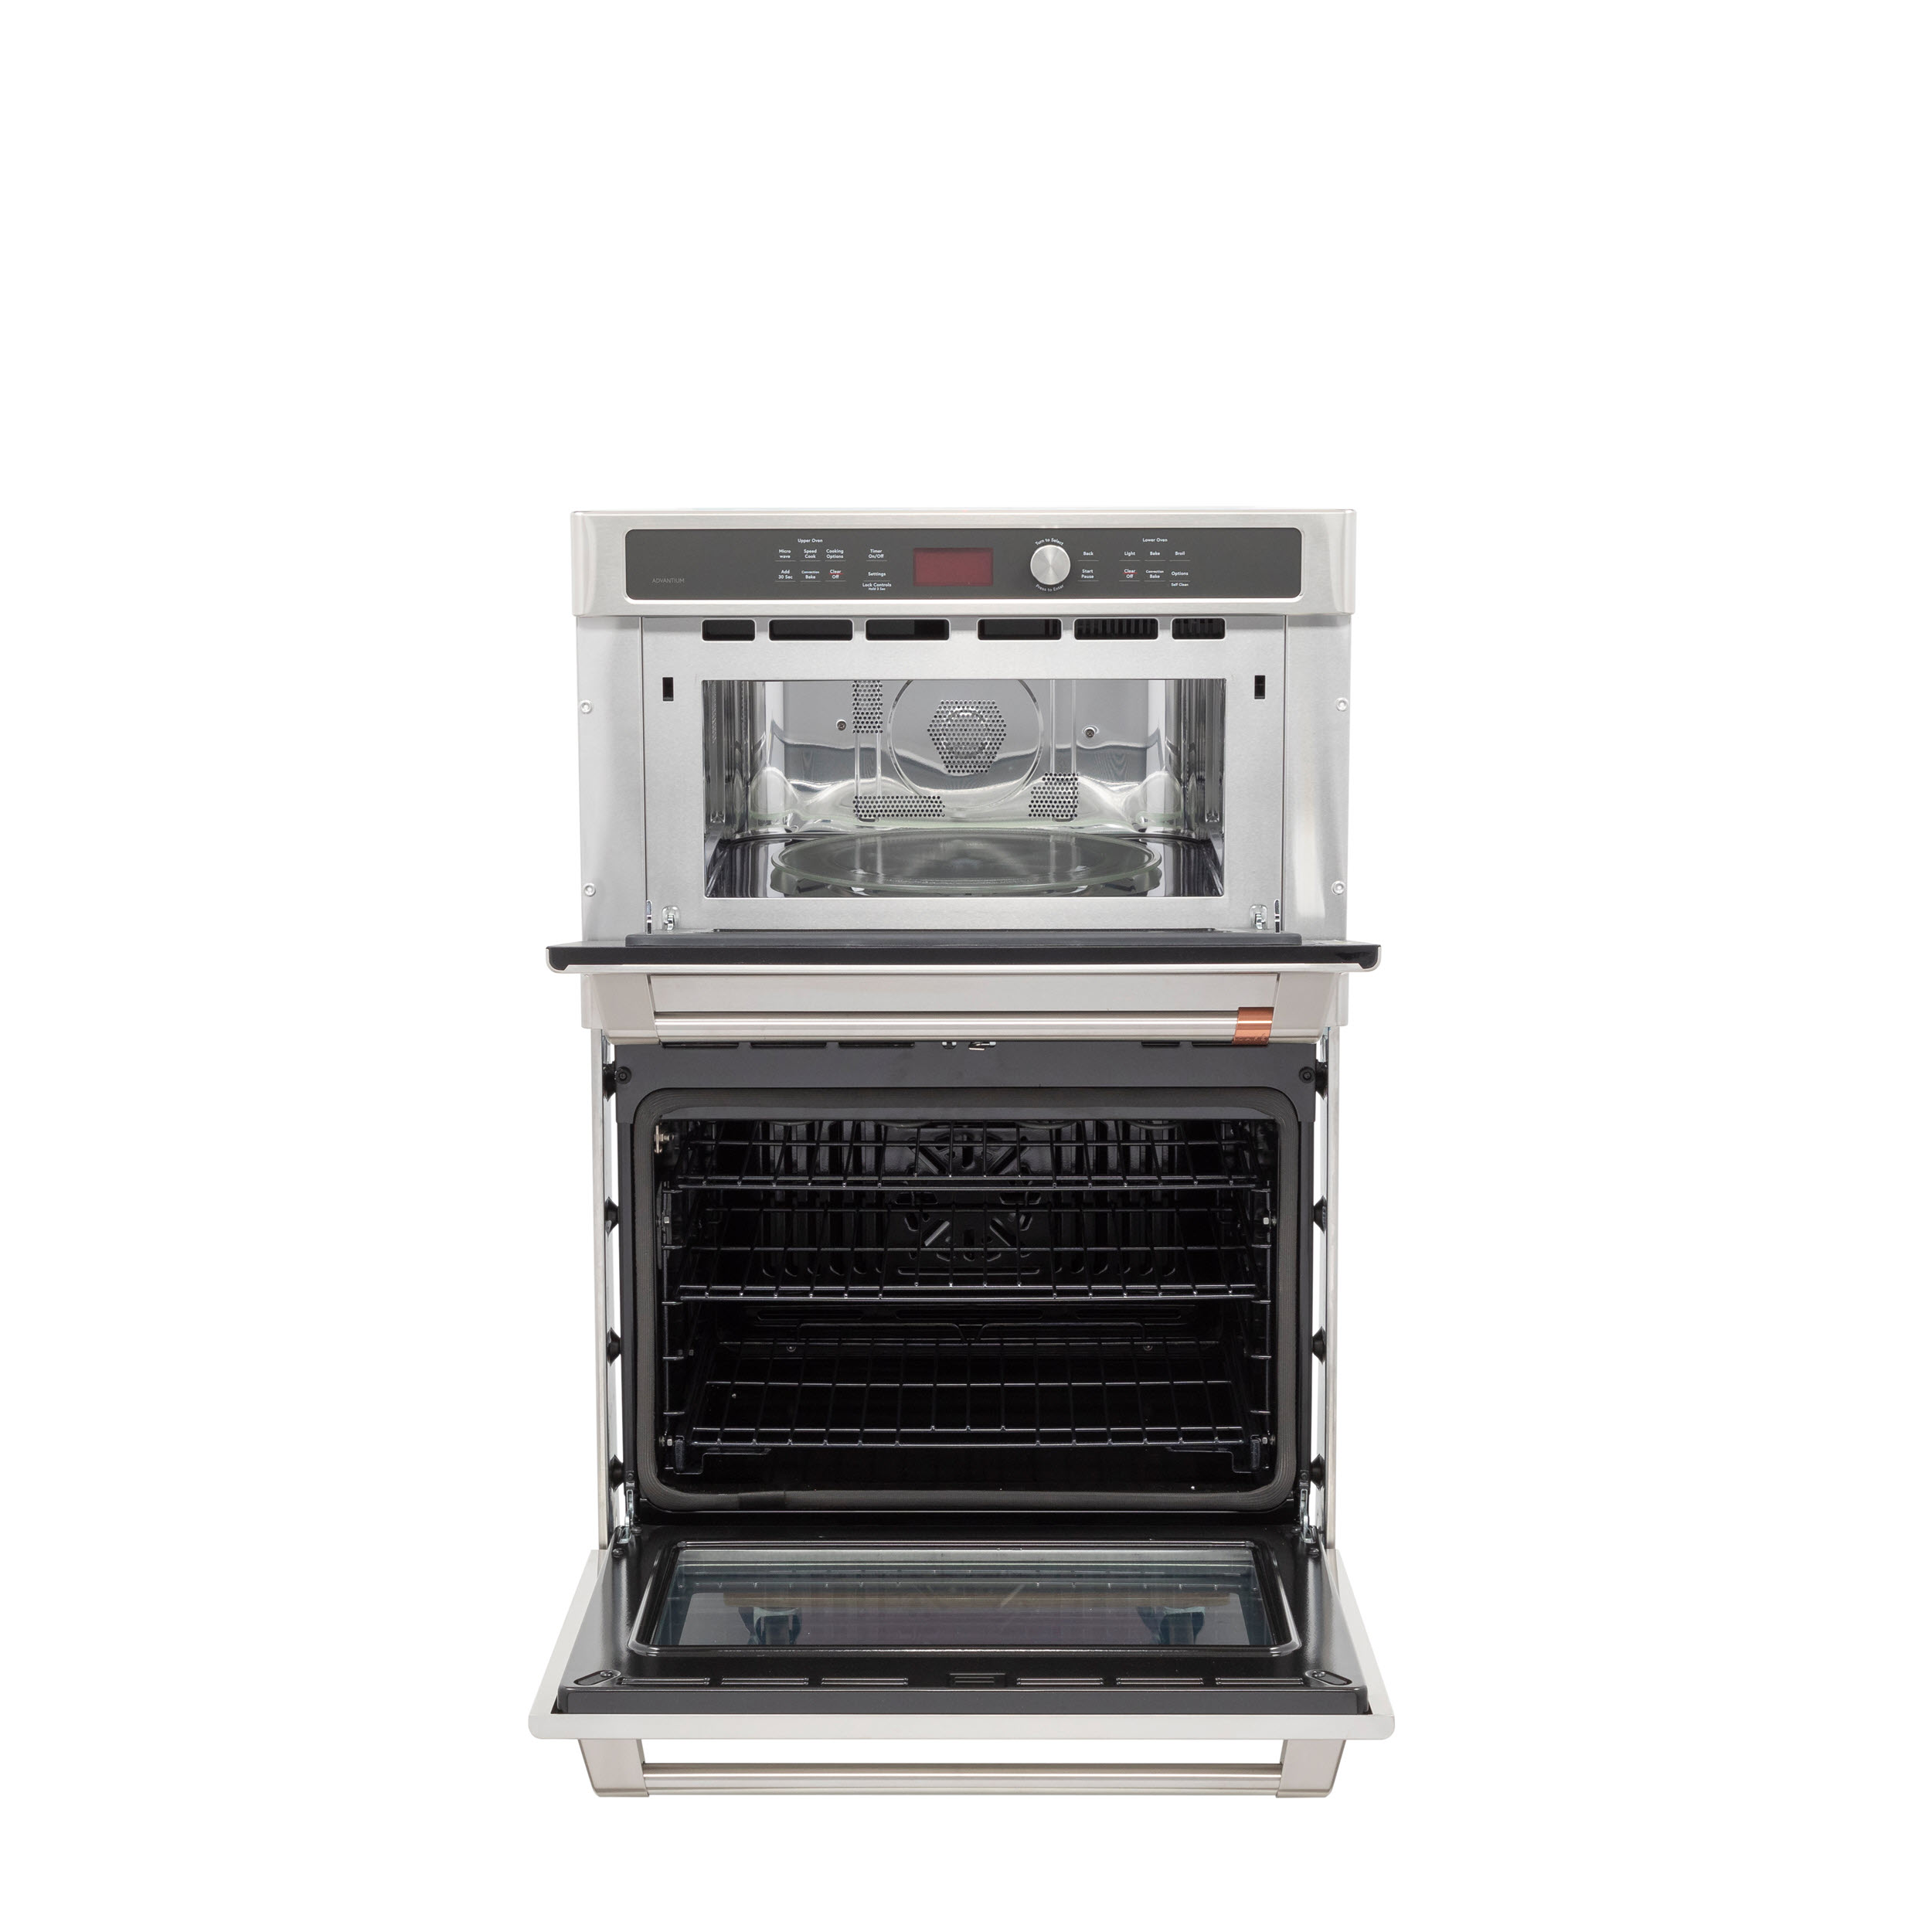 Model: CTC912P2NS1 | Cafe Café™ 30 in. Combination Double Wall Oven with Convection and Advantium® Technology